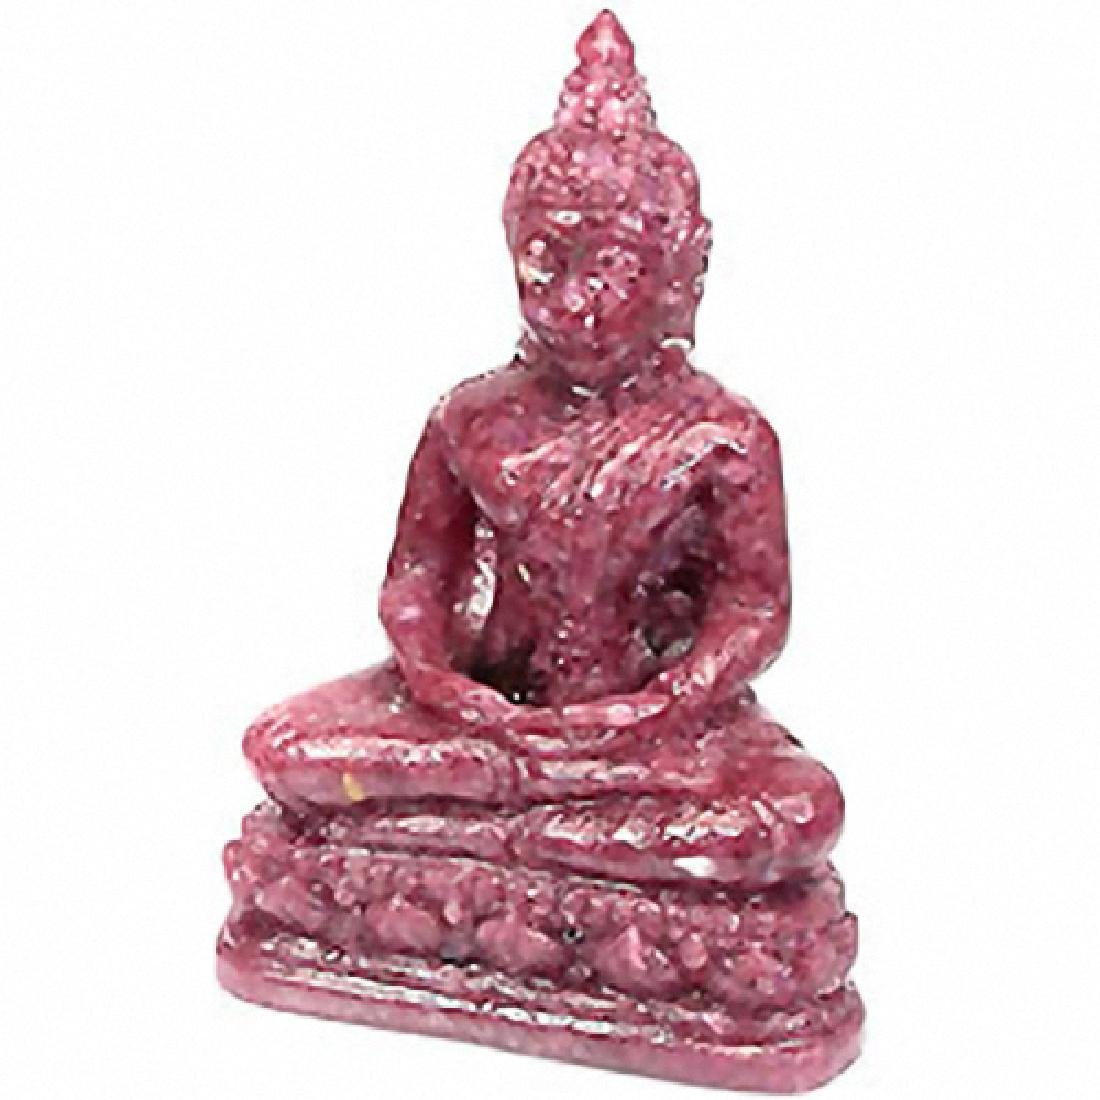 559ct. Buddha Figure Statue Red Pink Sapphire